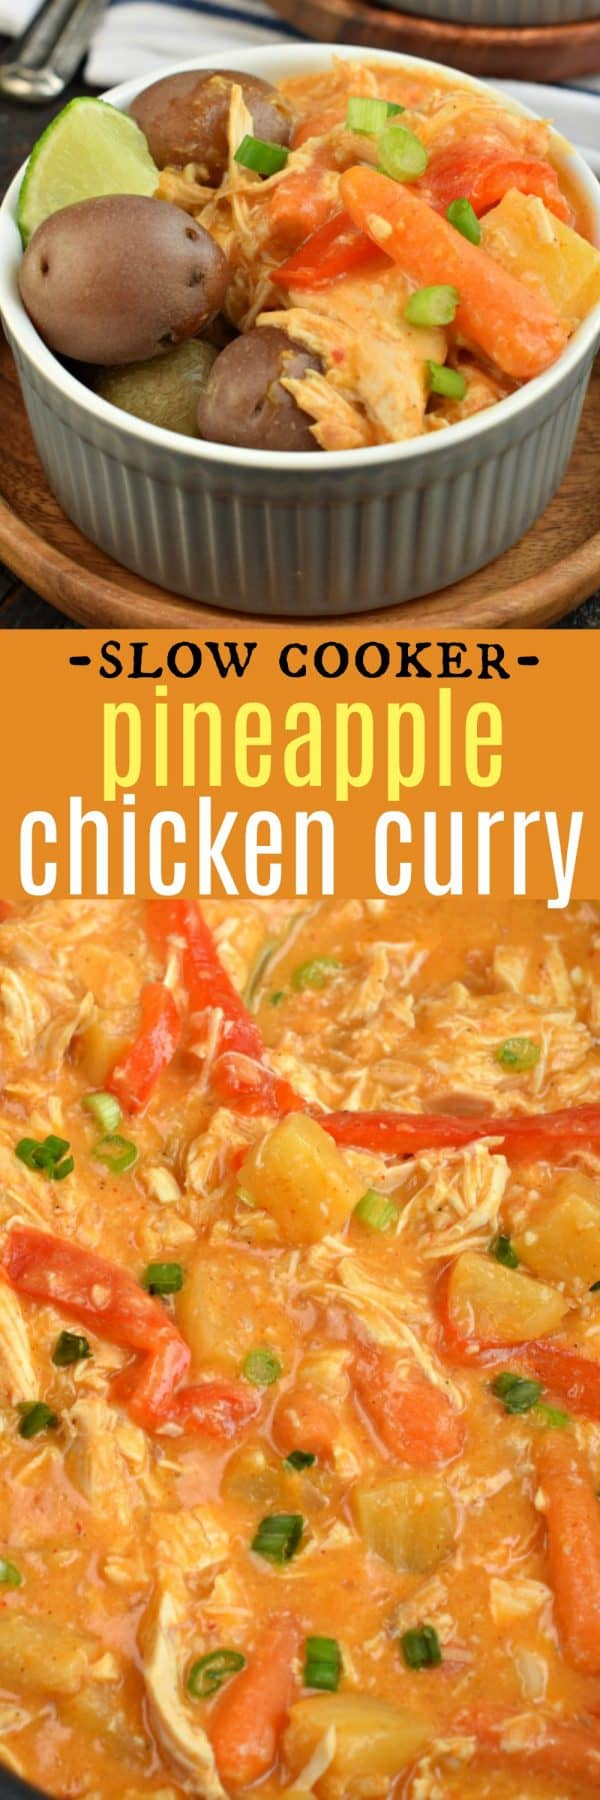 Slow Cooker Pineapple Chicken Curry is an easy Thai dish loaded with flavor. This curry recipe is packed with coconut milk, red curry paste, and ginger to give and aroma and flavor that's better than a restaurant!